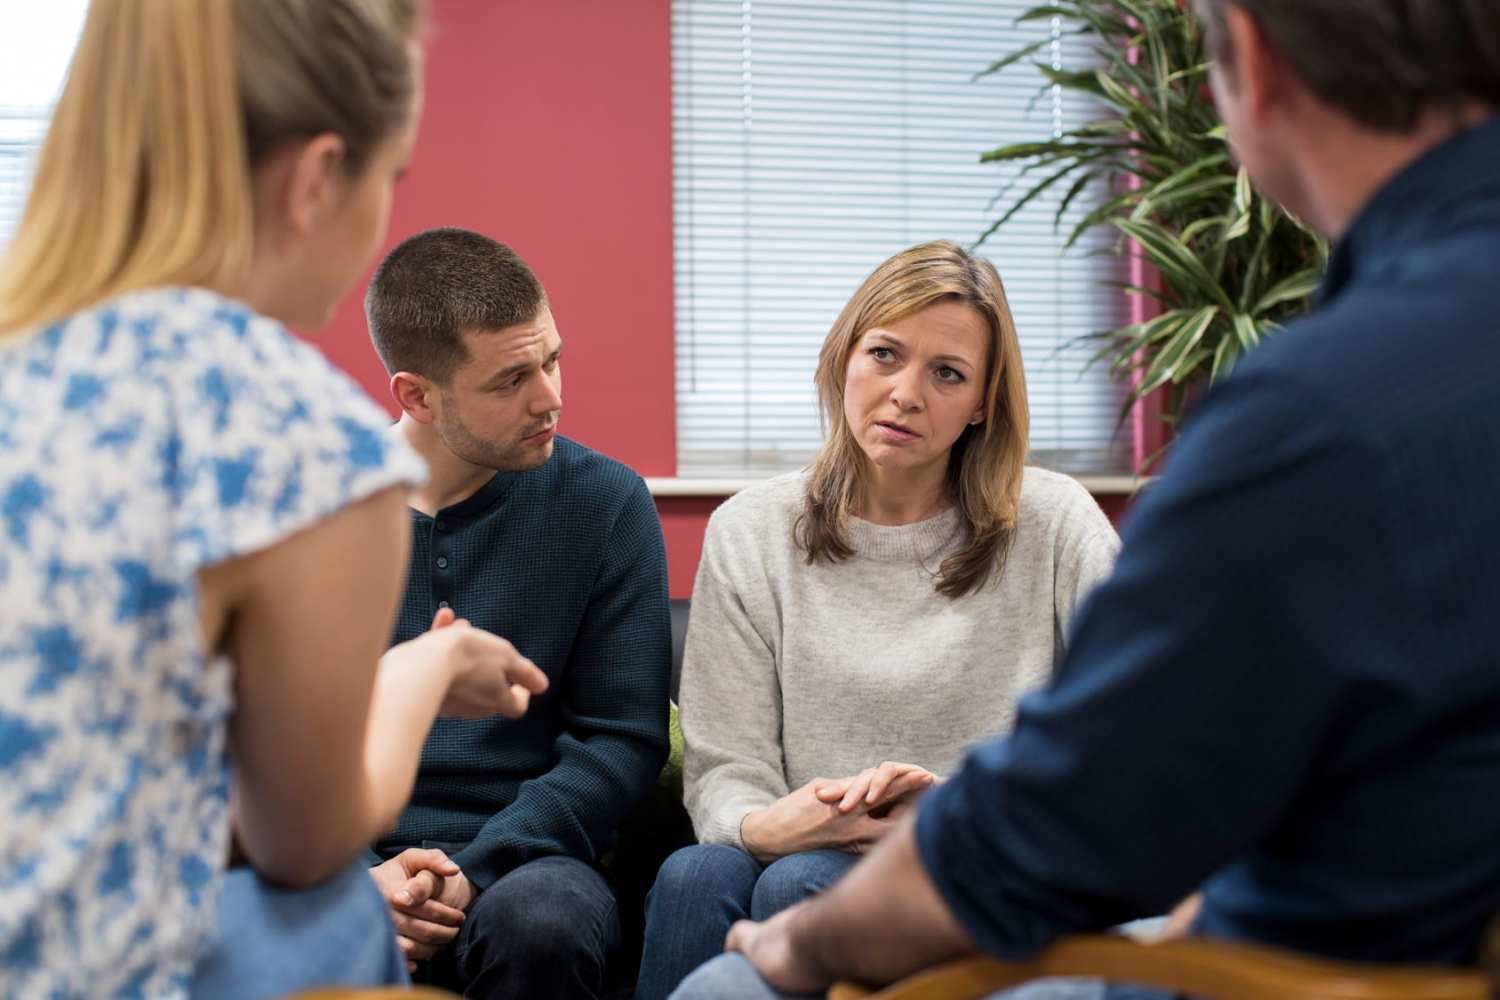 mental health and substance abuse coverage